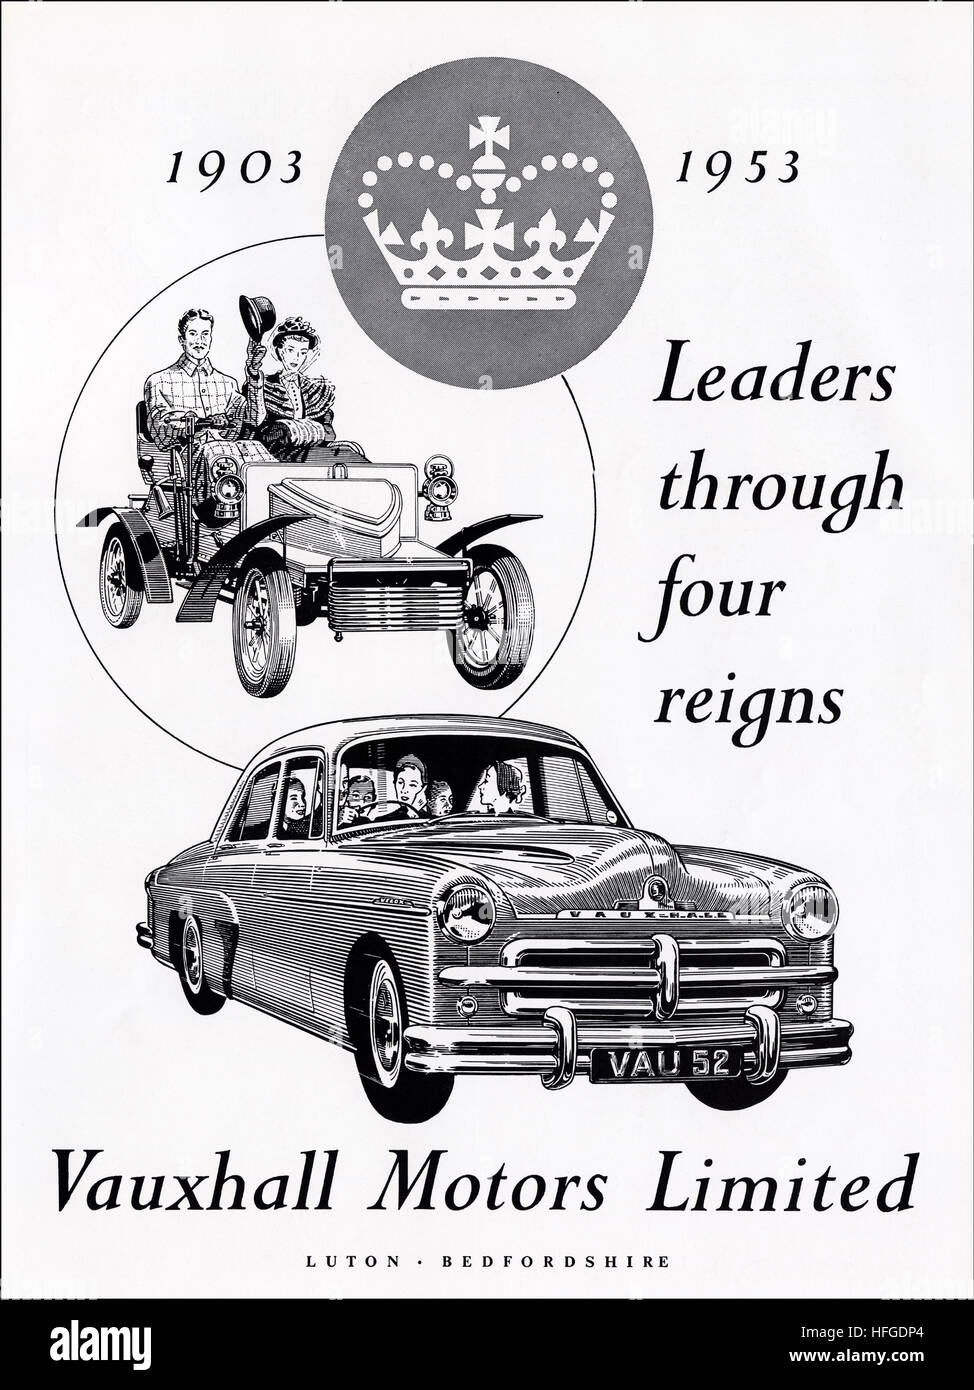 1950s advert advertising from original old vintage English magazine dated 1953 advertisement for Vauxhall Motors - Stock Image